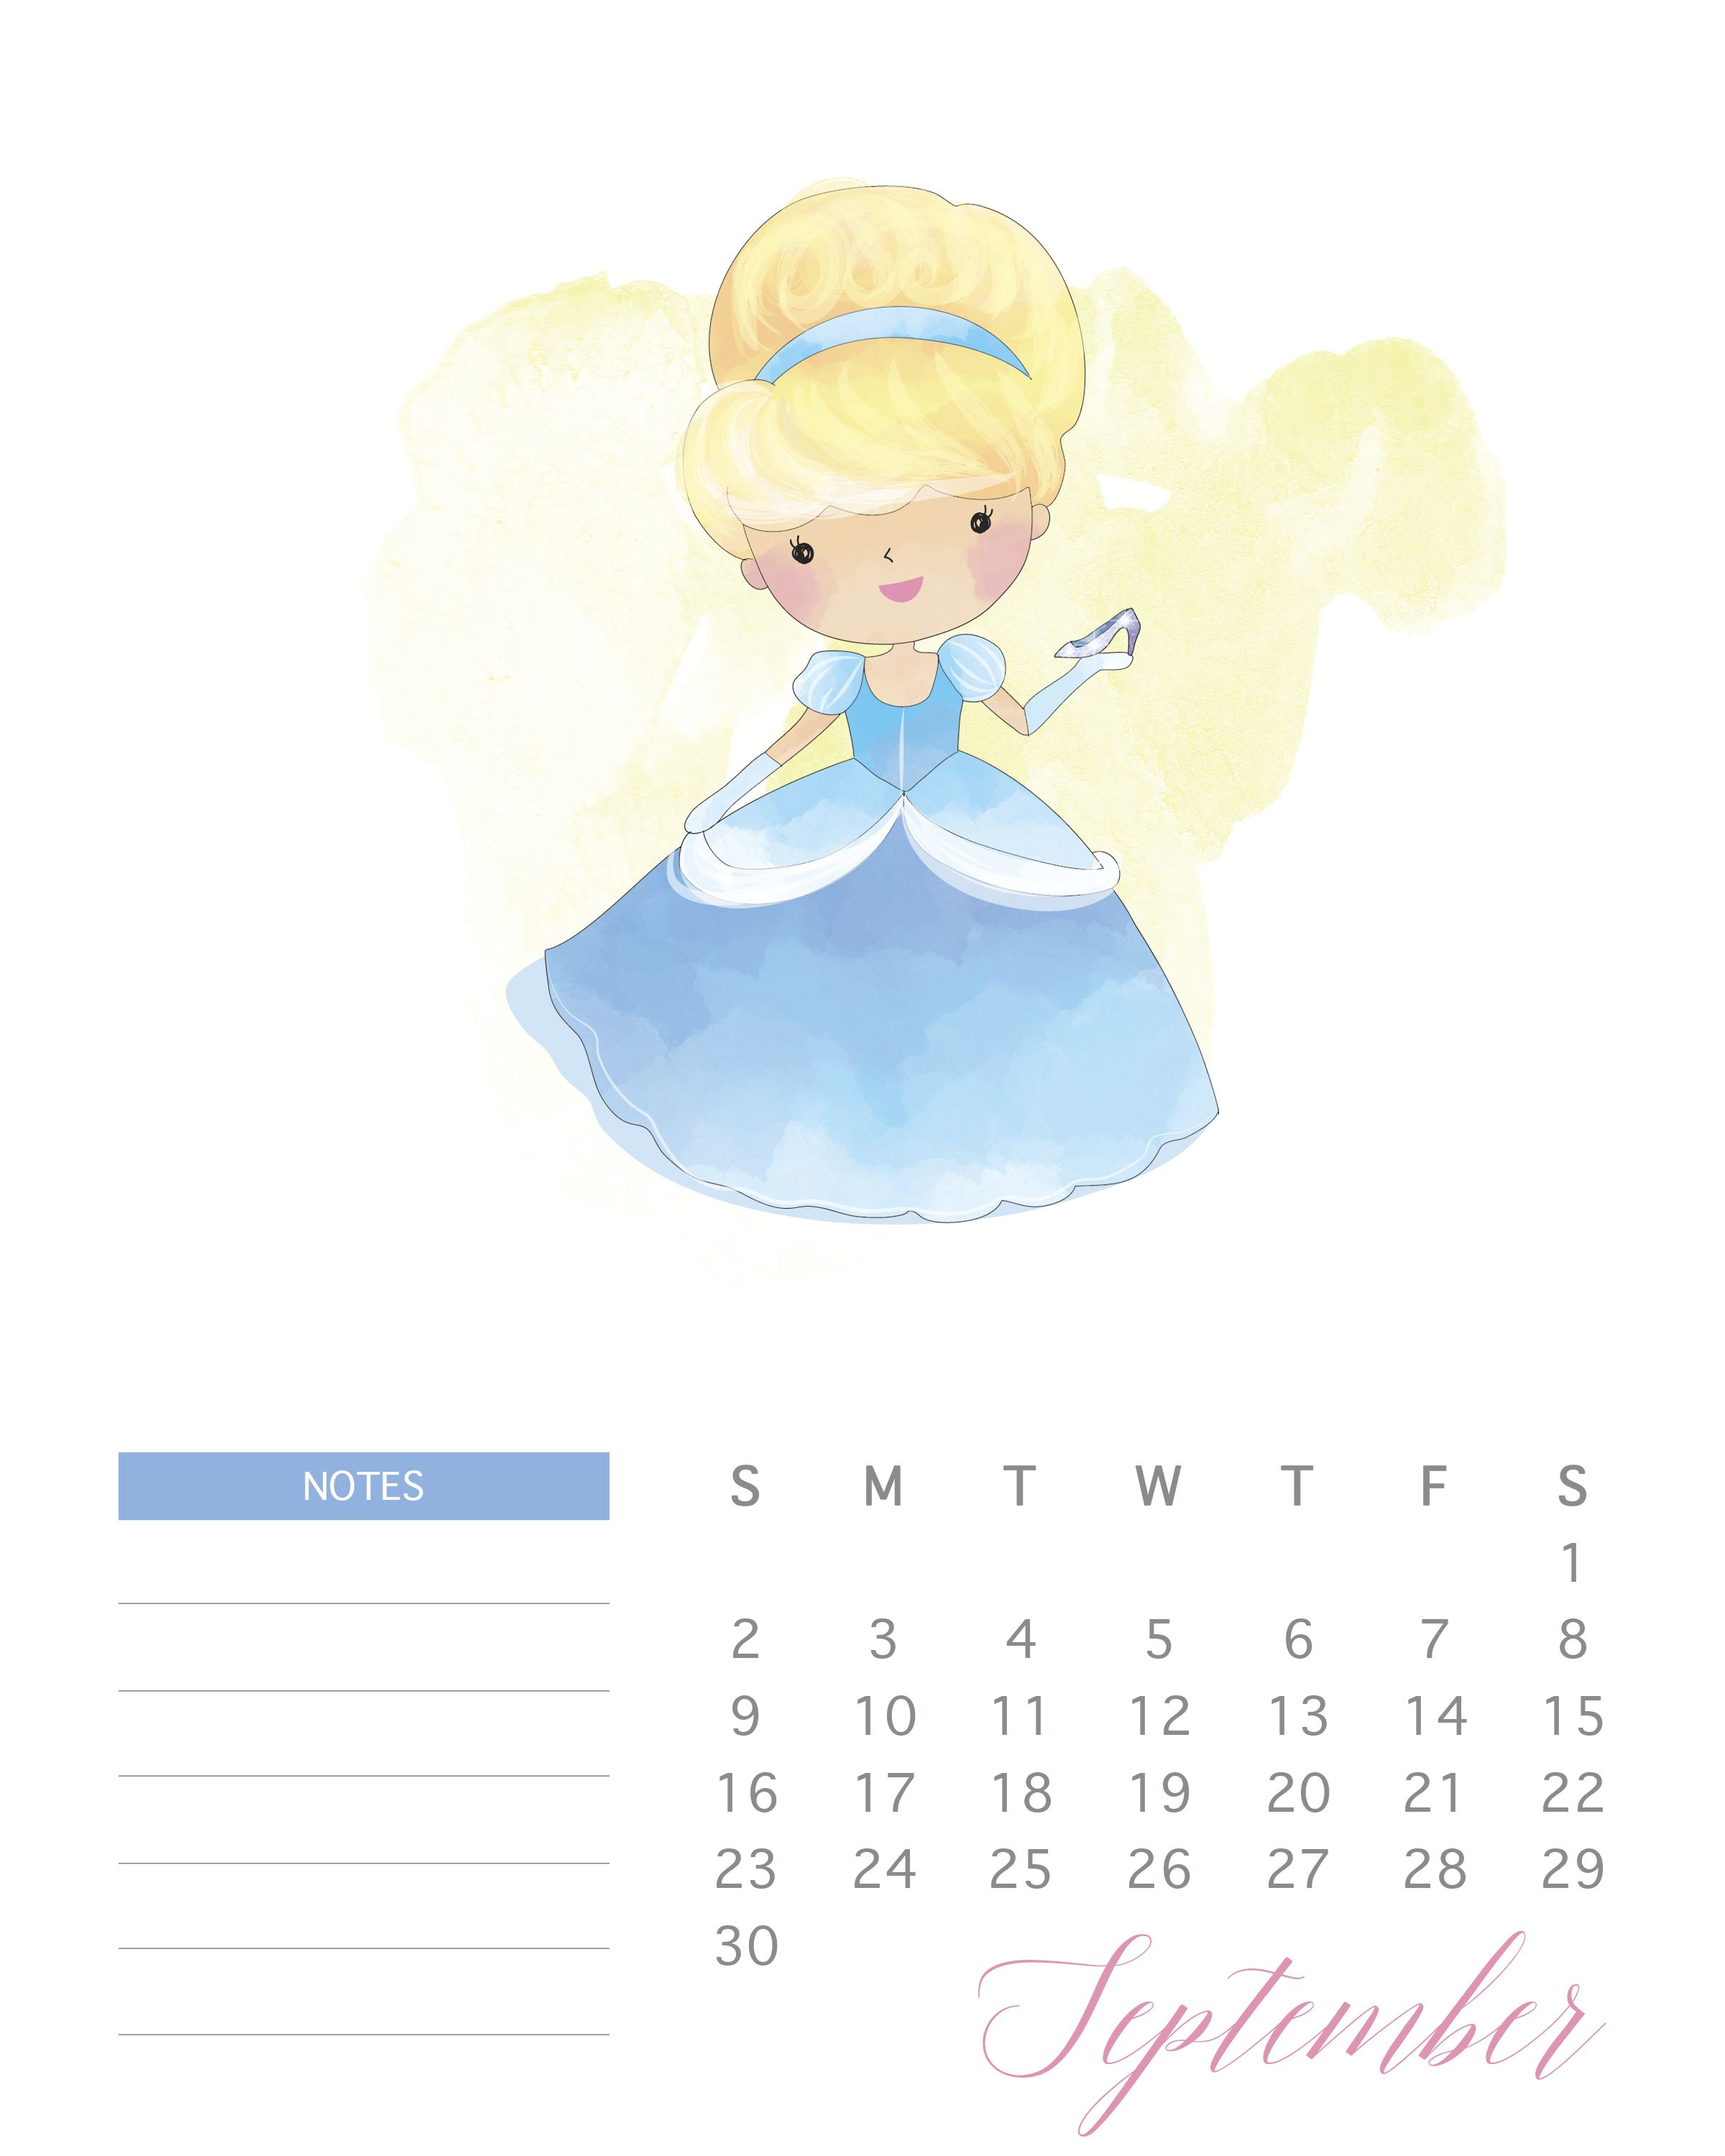 Princess-2018-9-September.jpg 2,400×3,000 pixeles | Calendario 2018 ...